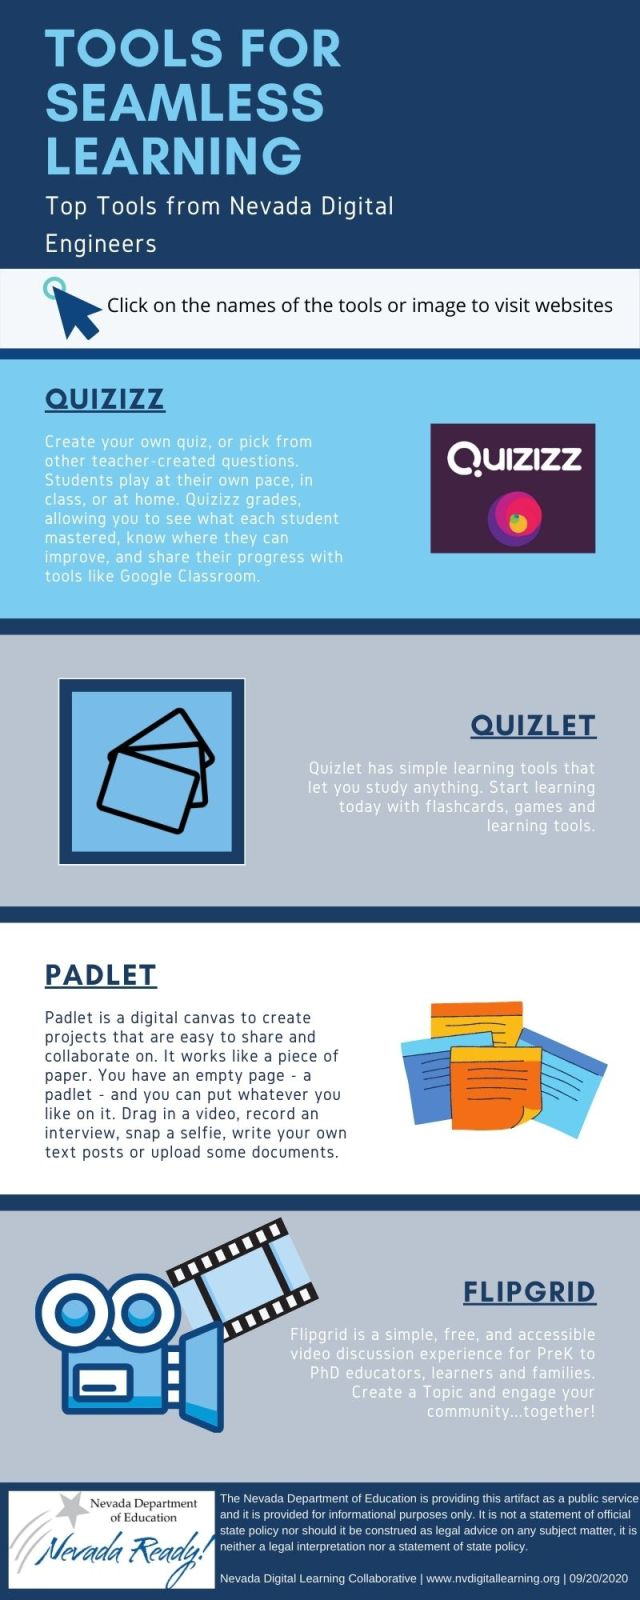 picture of page 1 of the infographic tools for seamless learning